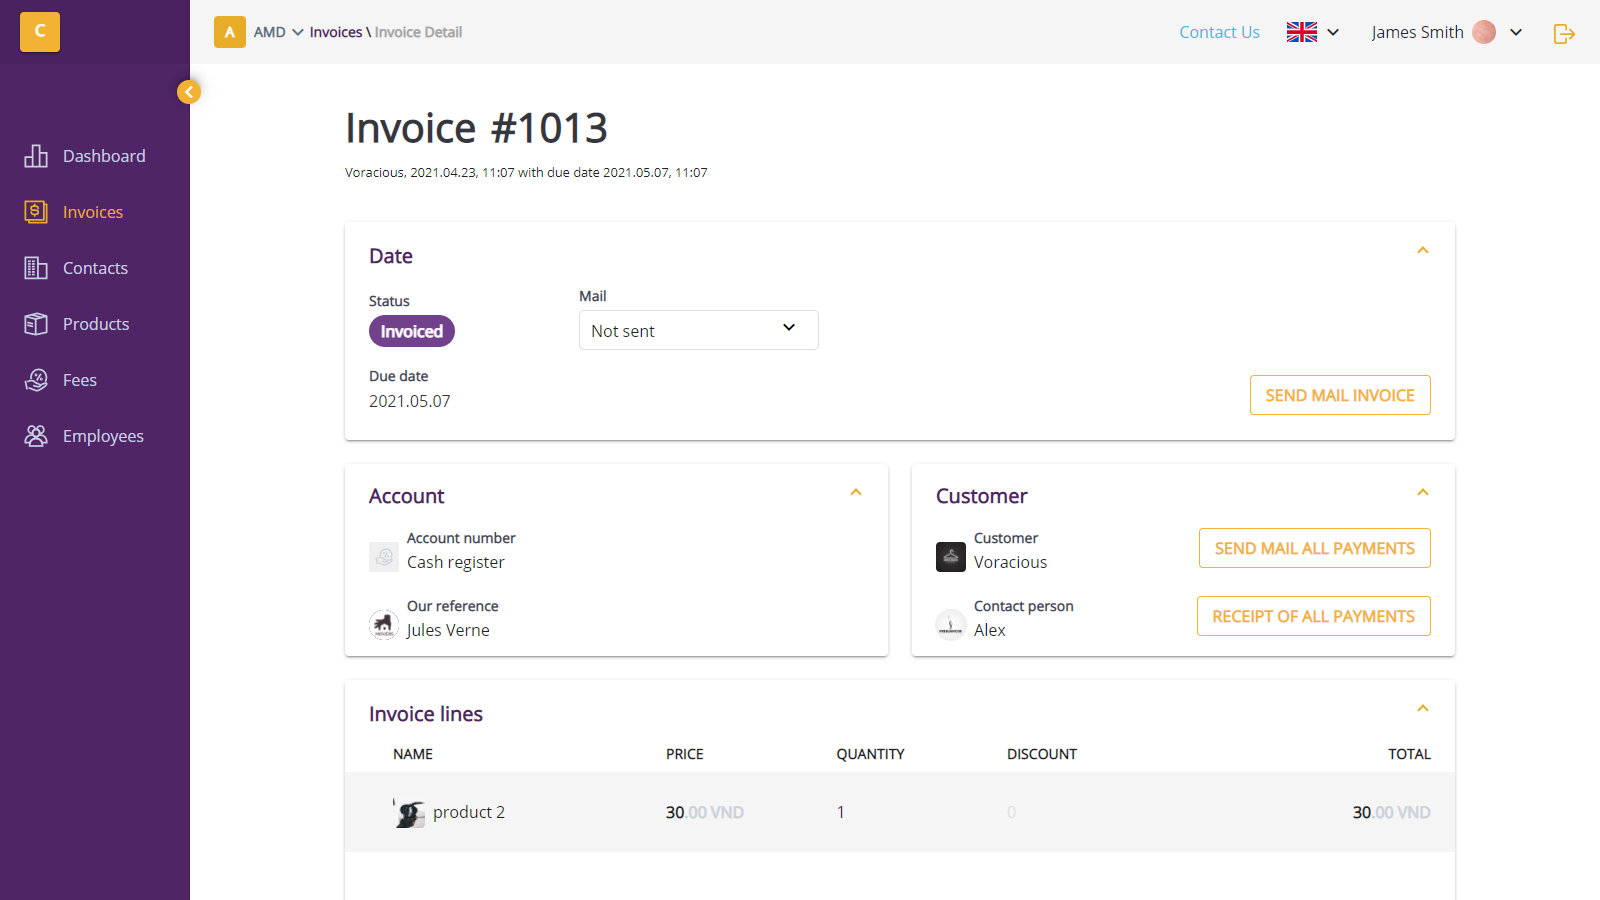 Real invoice detail